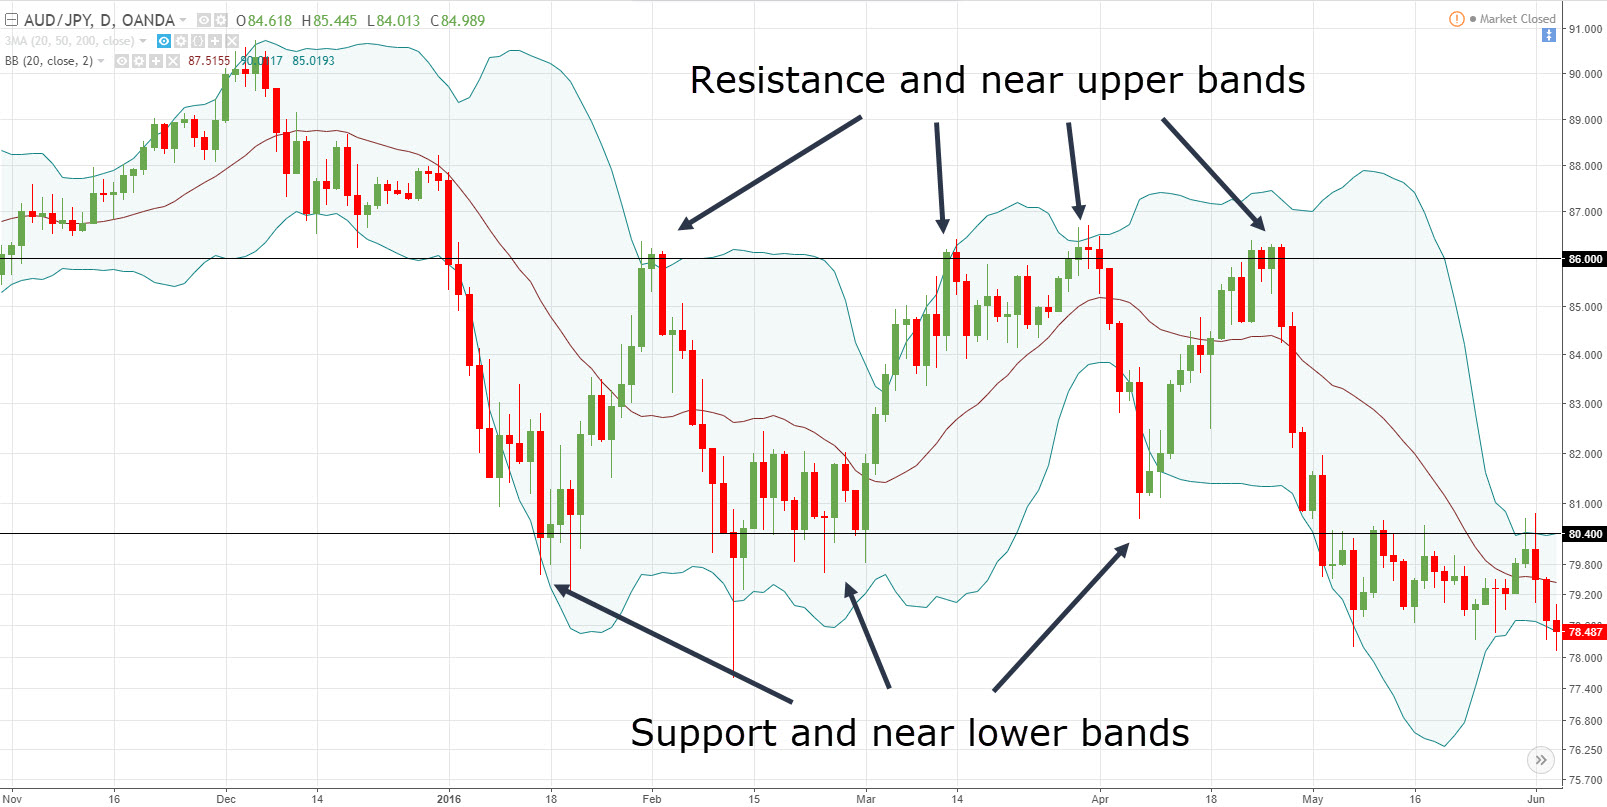 When to buy and sell using bollinger bands